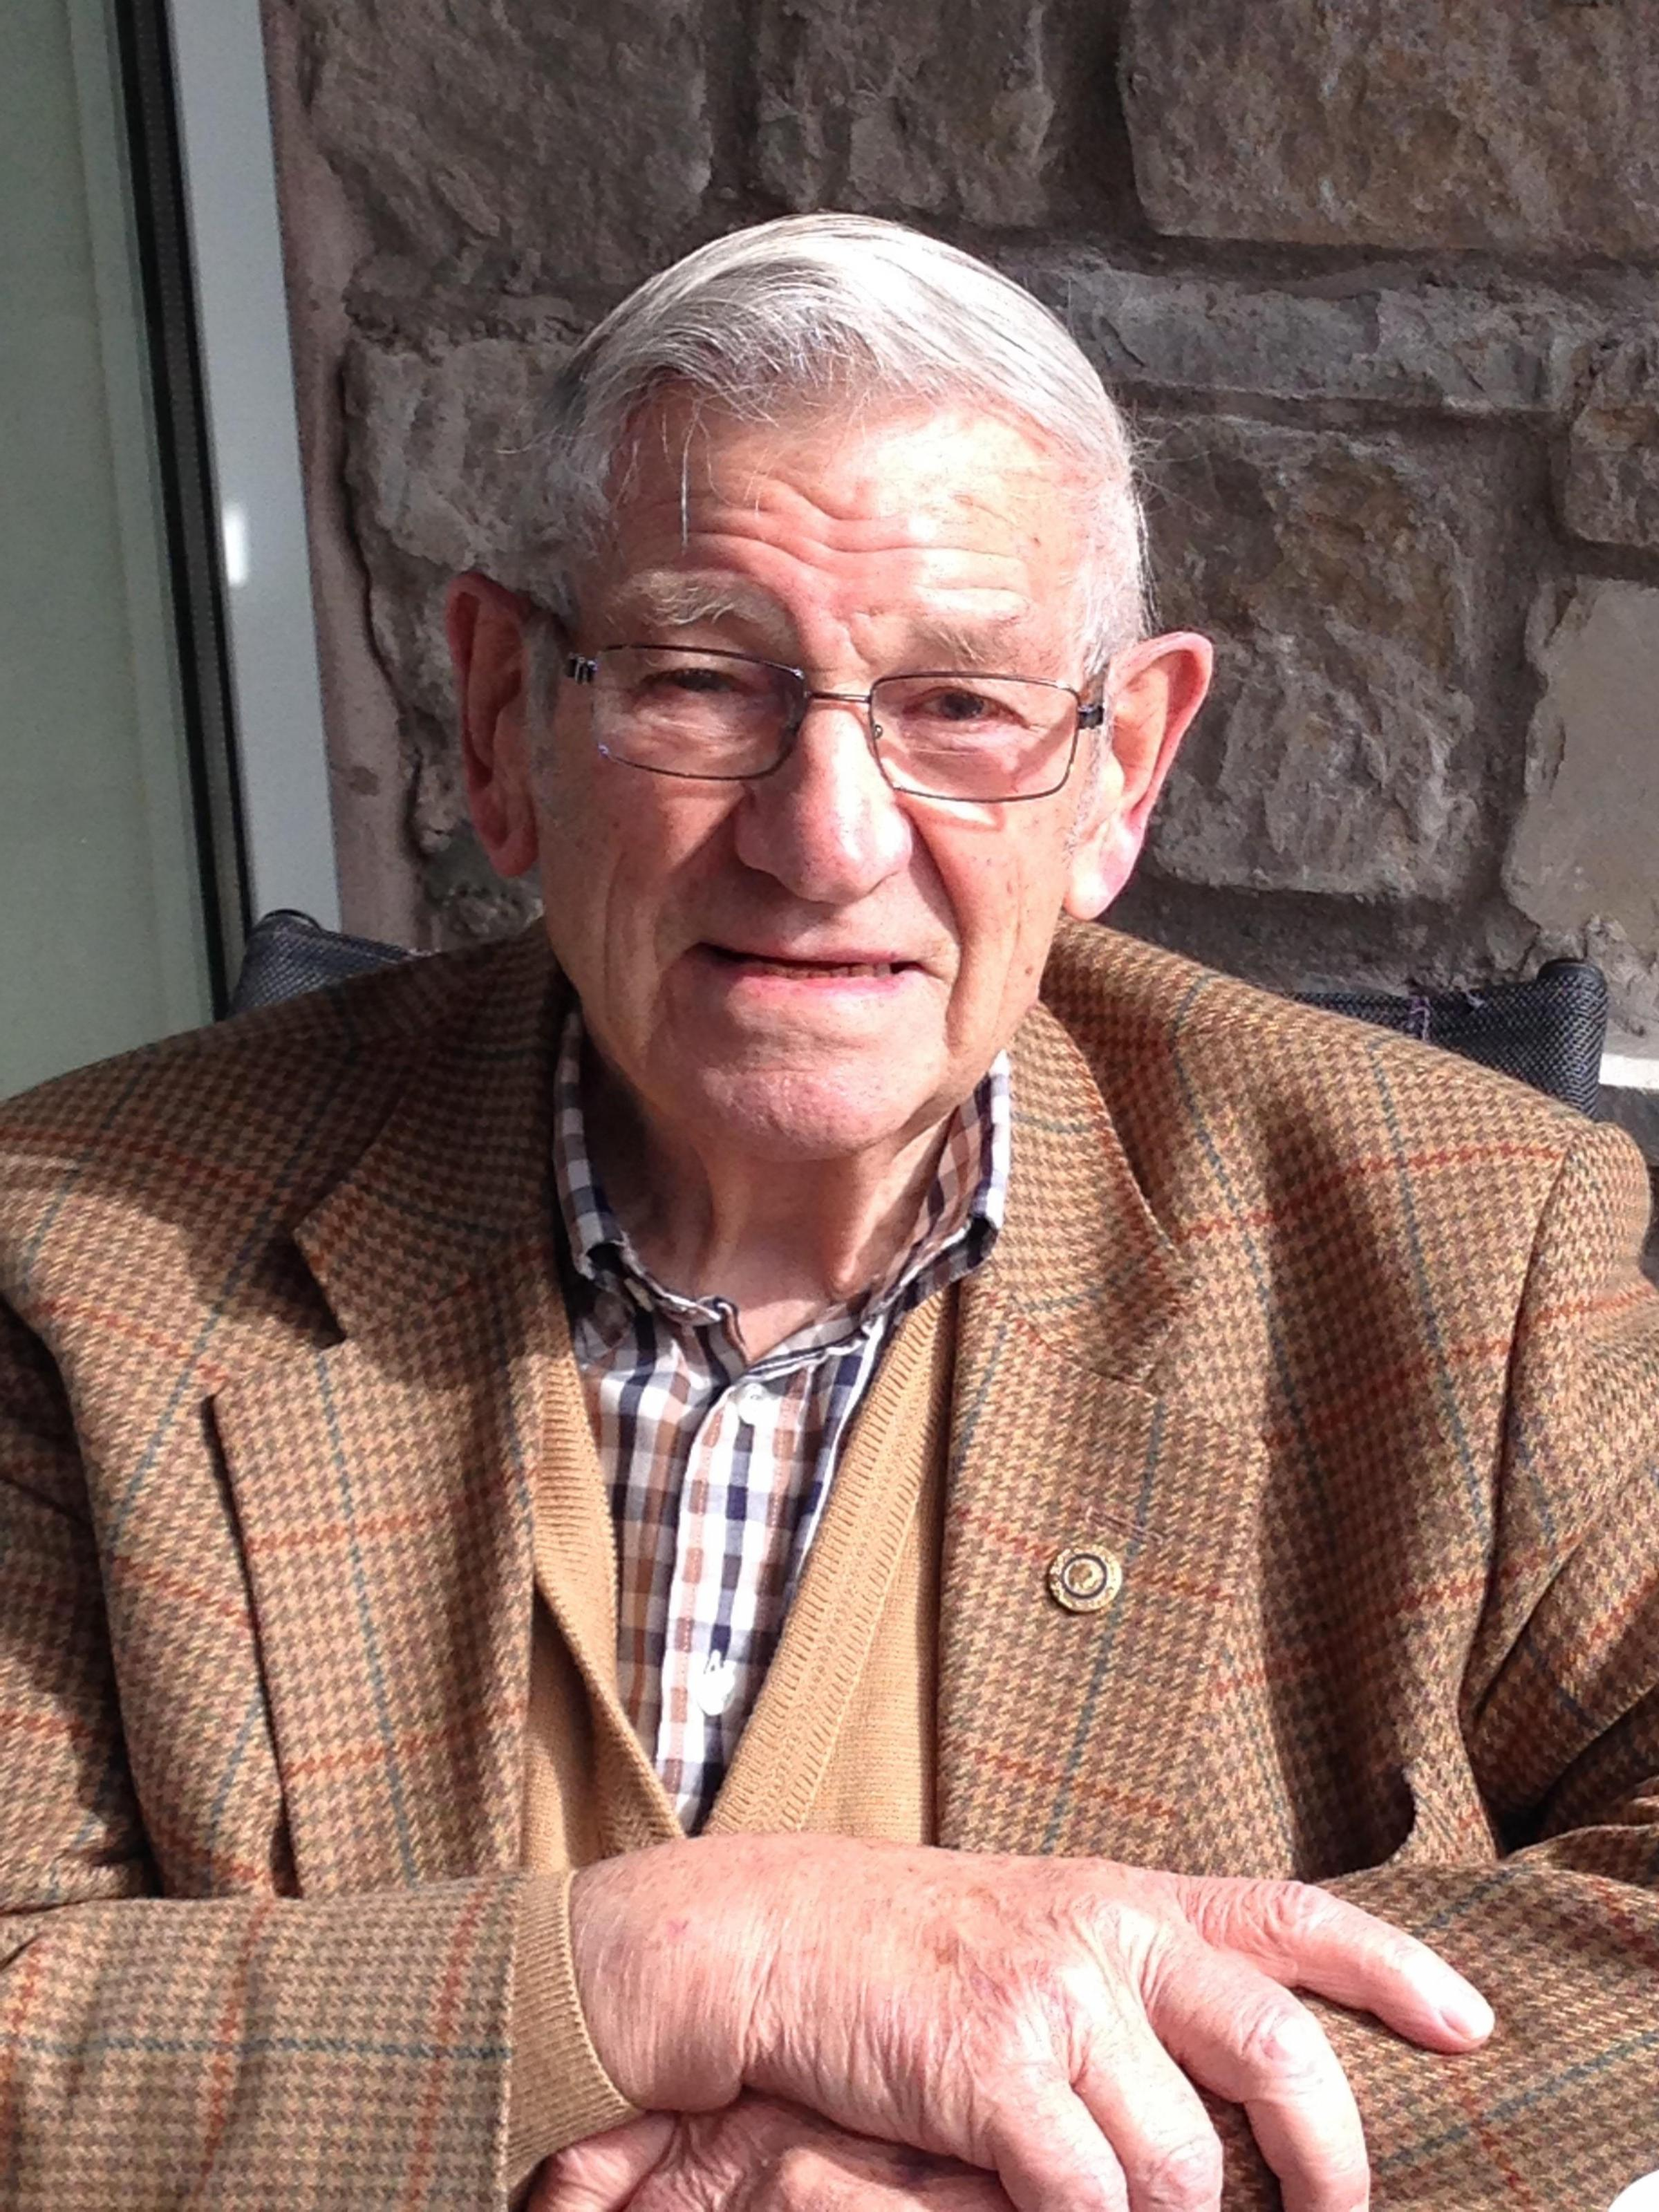 Robert Armstrong, who headed Longtown-based Wm Armstrong Ltd for almost five decades, died at the age of 88.